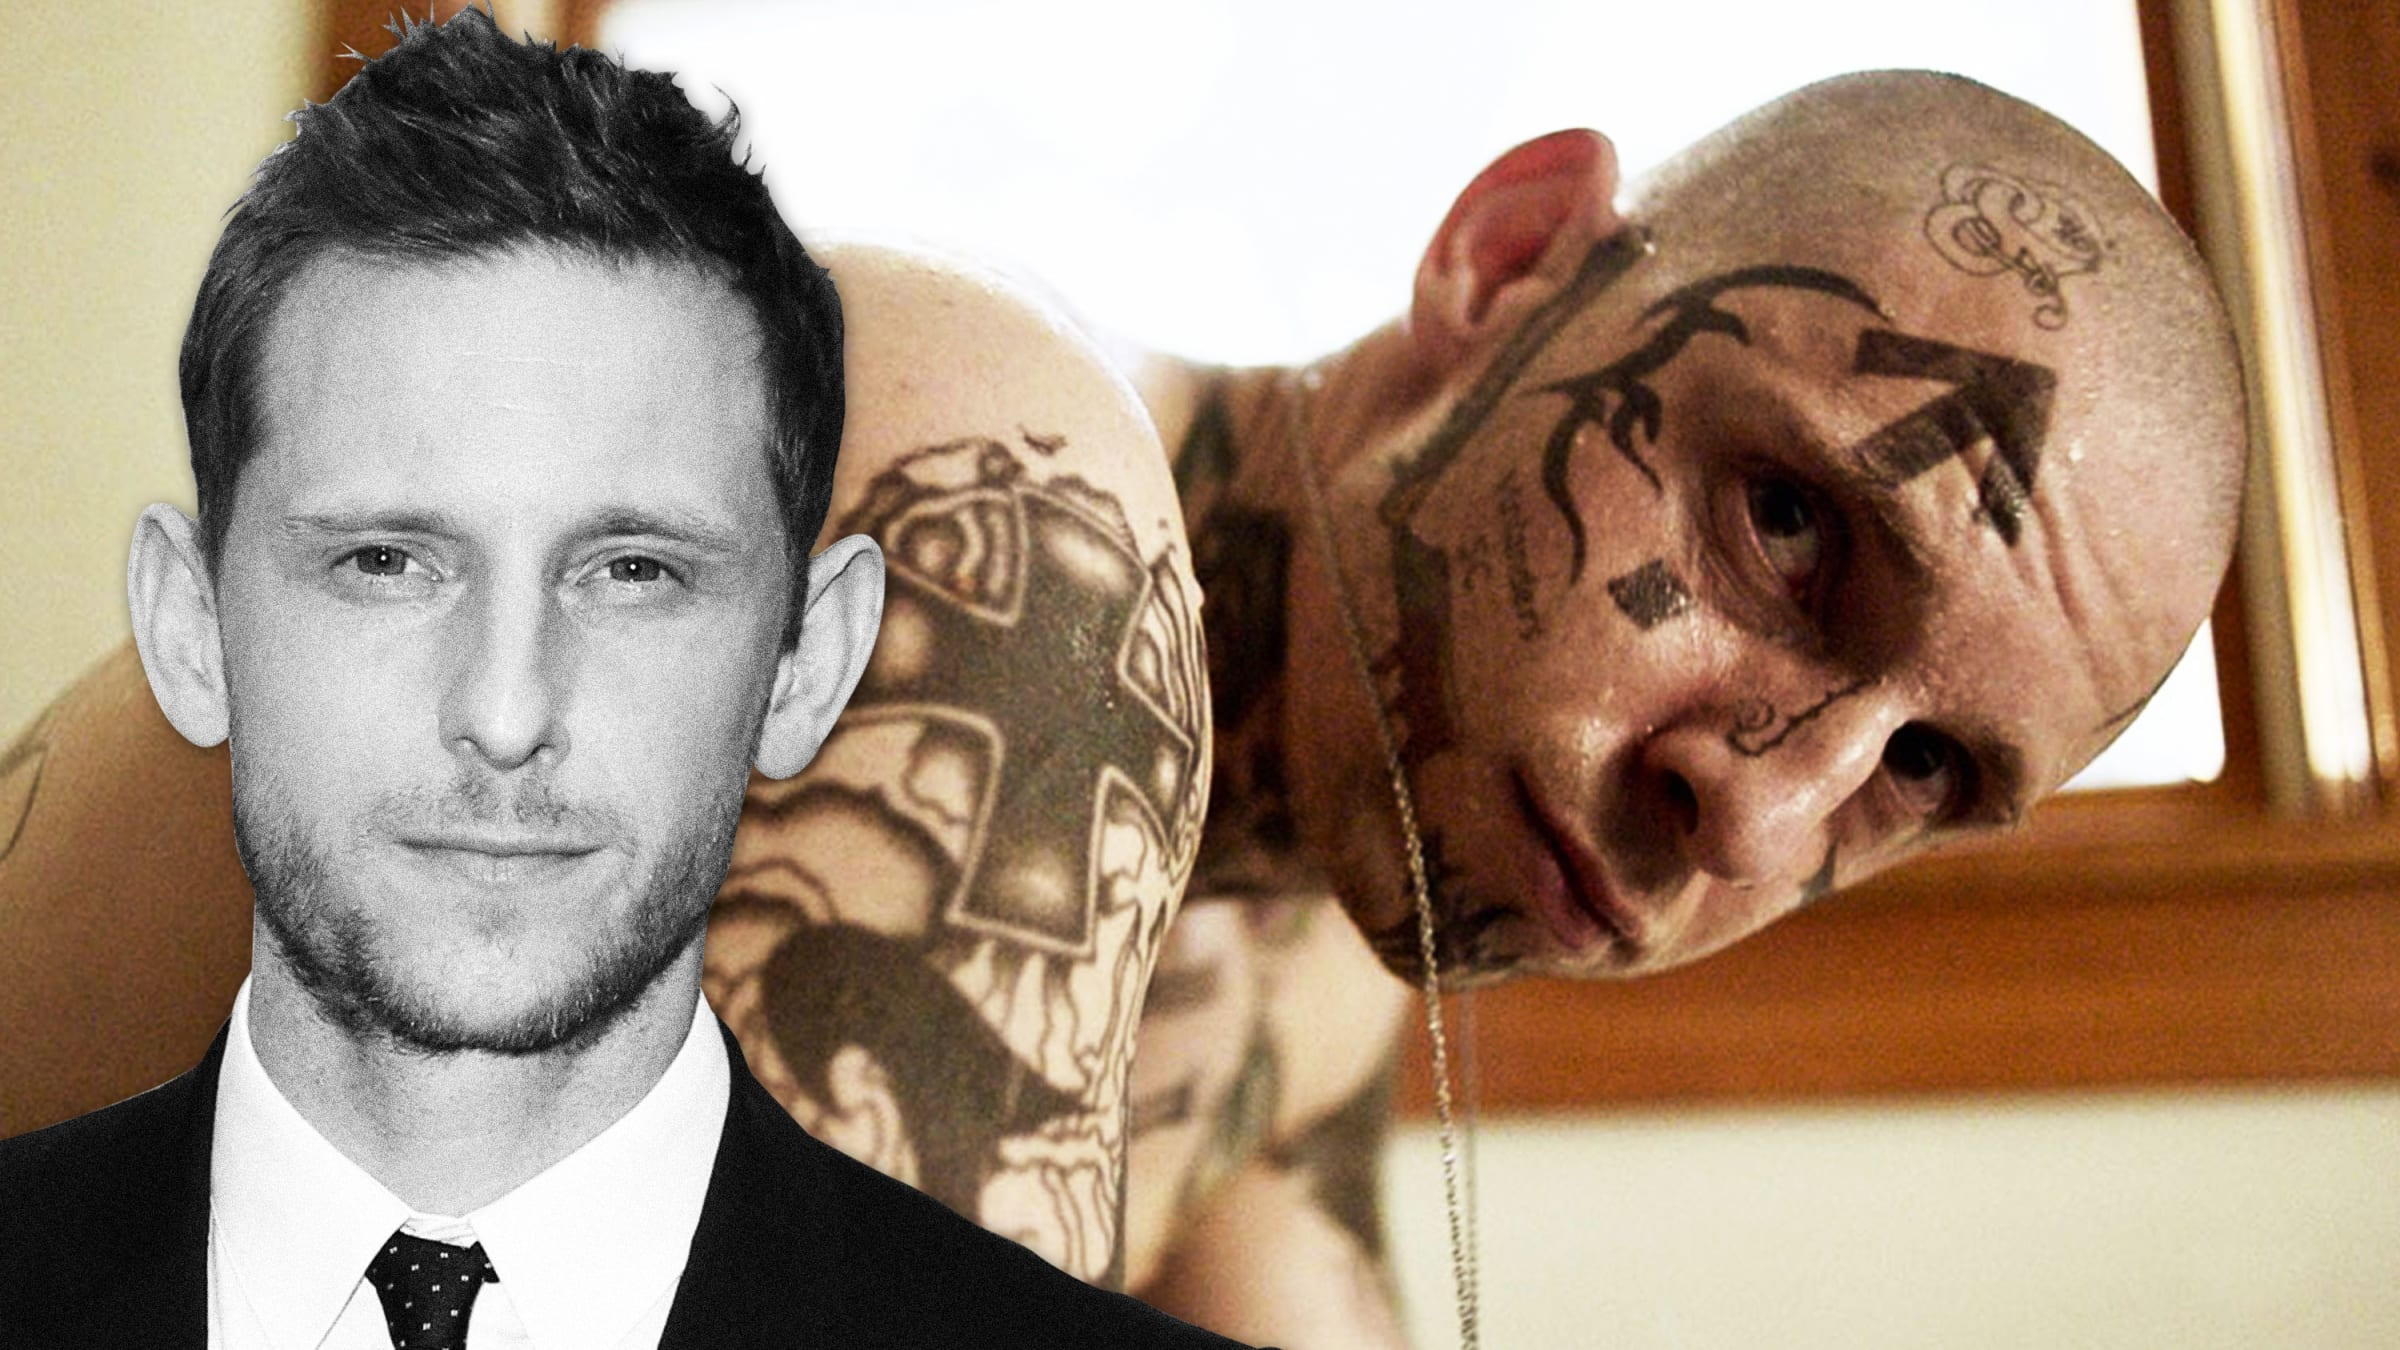 Jamie Bell on His Neo-Nazi in 'Skin' and How Trump's 'Send Her Back' Rally Reminded Him of Nazi Germany